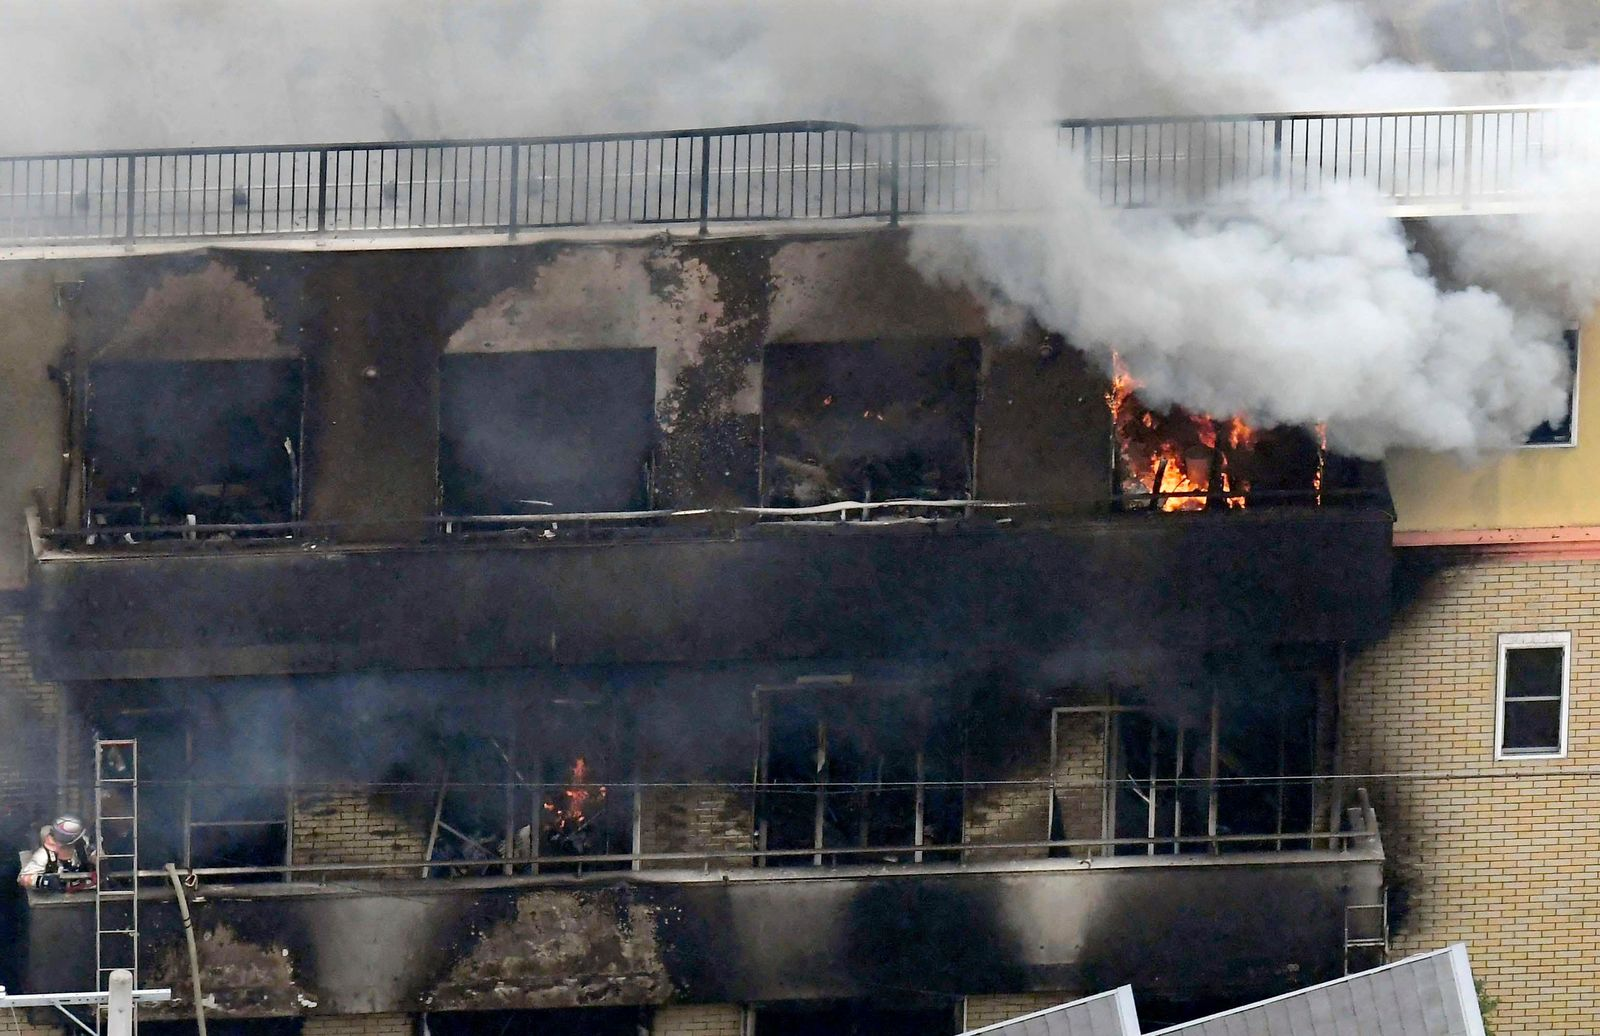 Smoke billows from a Kyoto Animation building in Kyoto, western Japan, Thursday, July 18, 2019. The fire broke out in the three-story building in Japan's ancient capital of Kyoto, after a suspect sprayed an unidentified liquid to accelerate the blaze, Kyoto prefectural police and fire department officials said.(Kyodo News via AP)